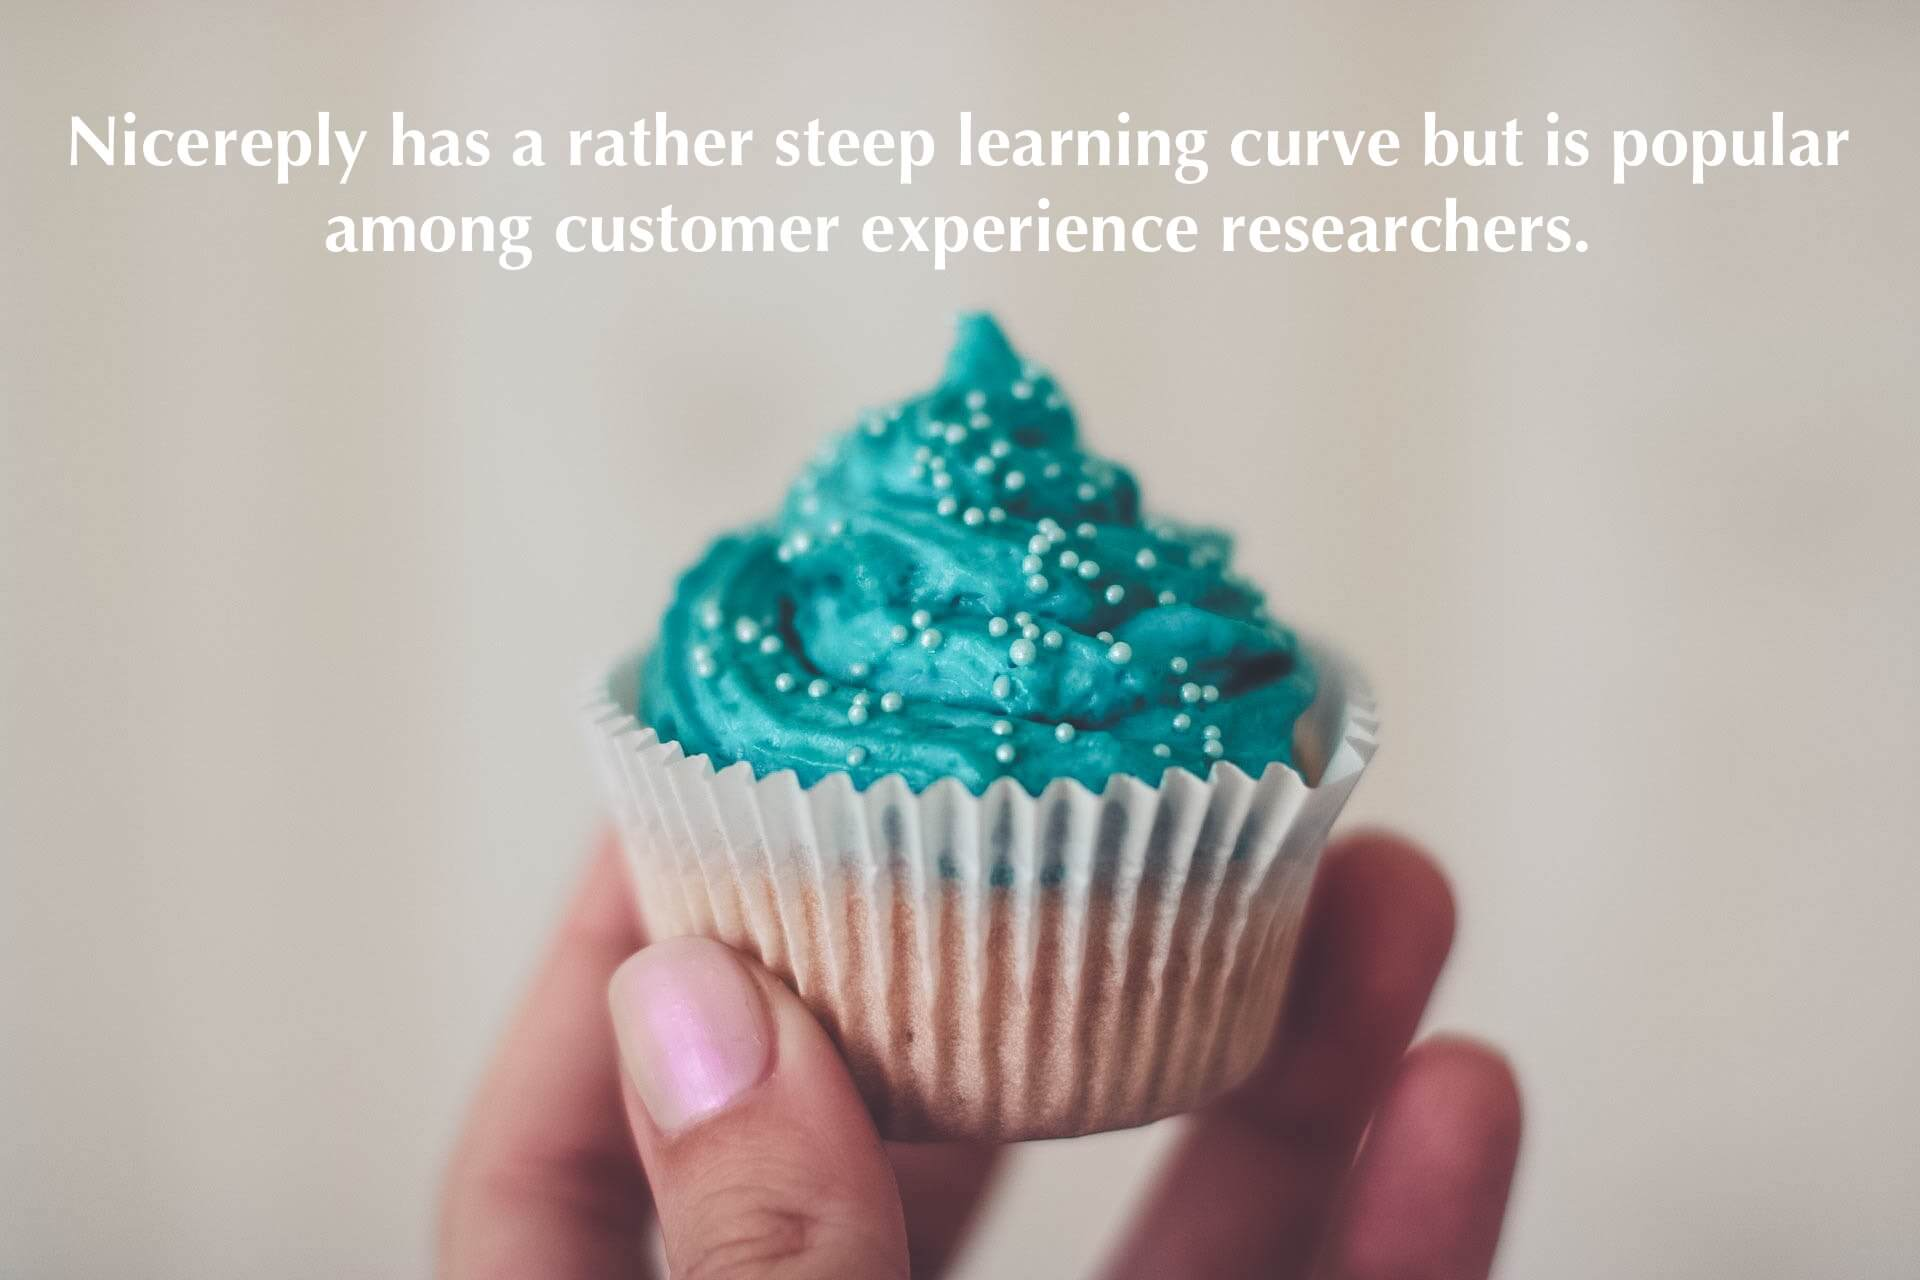 Nicereply has a rather steep learning curve but is popular among customer experience researchers.